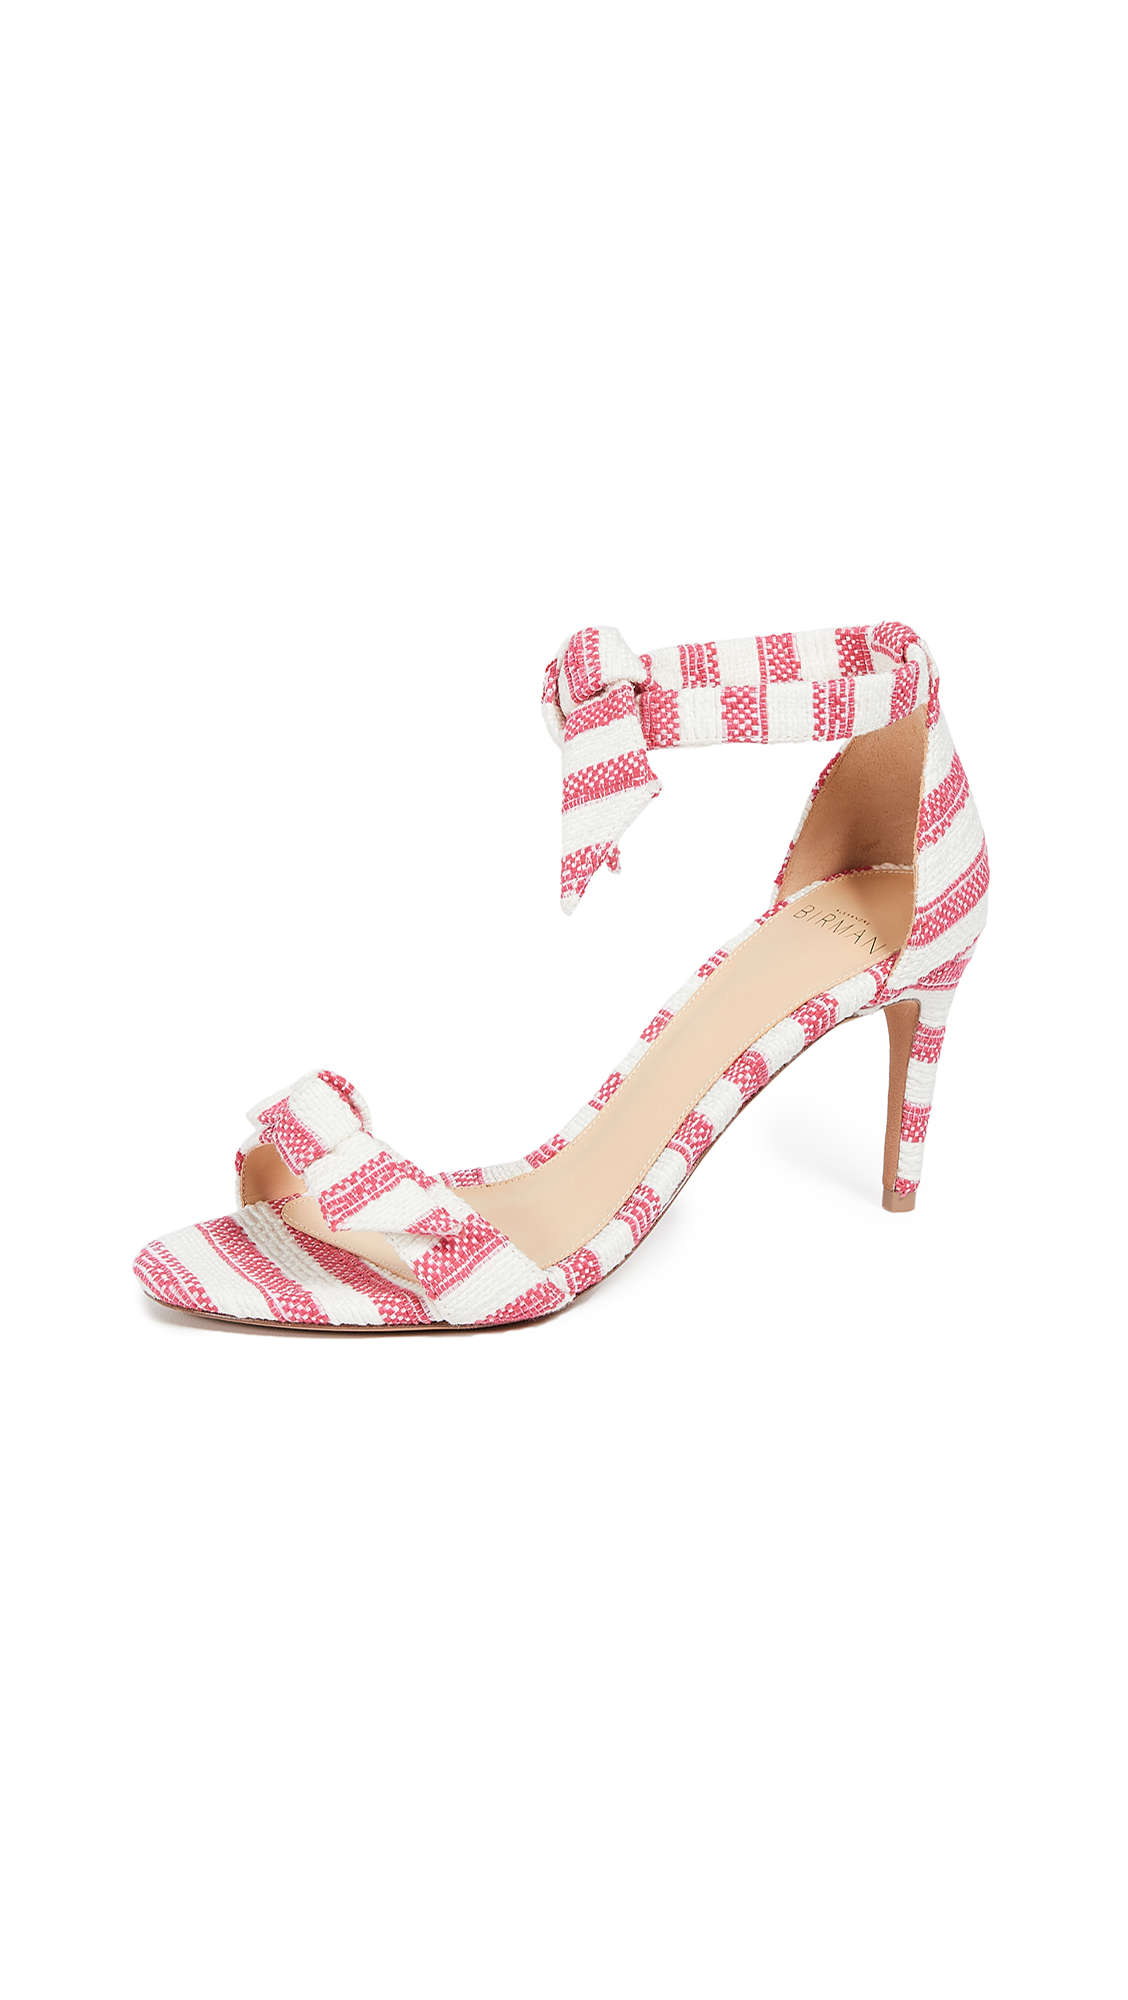 Alexandre Birman Clarita 75mm Sandals - Raspberry